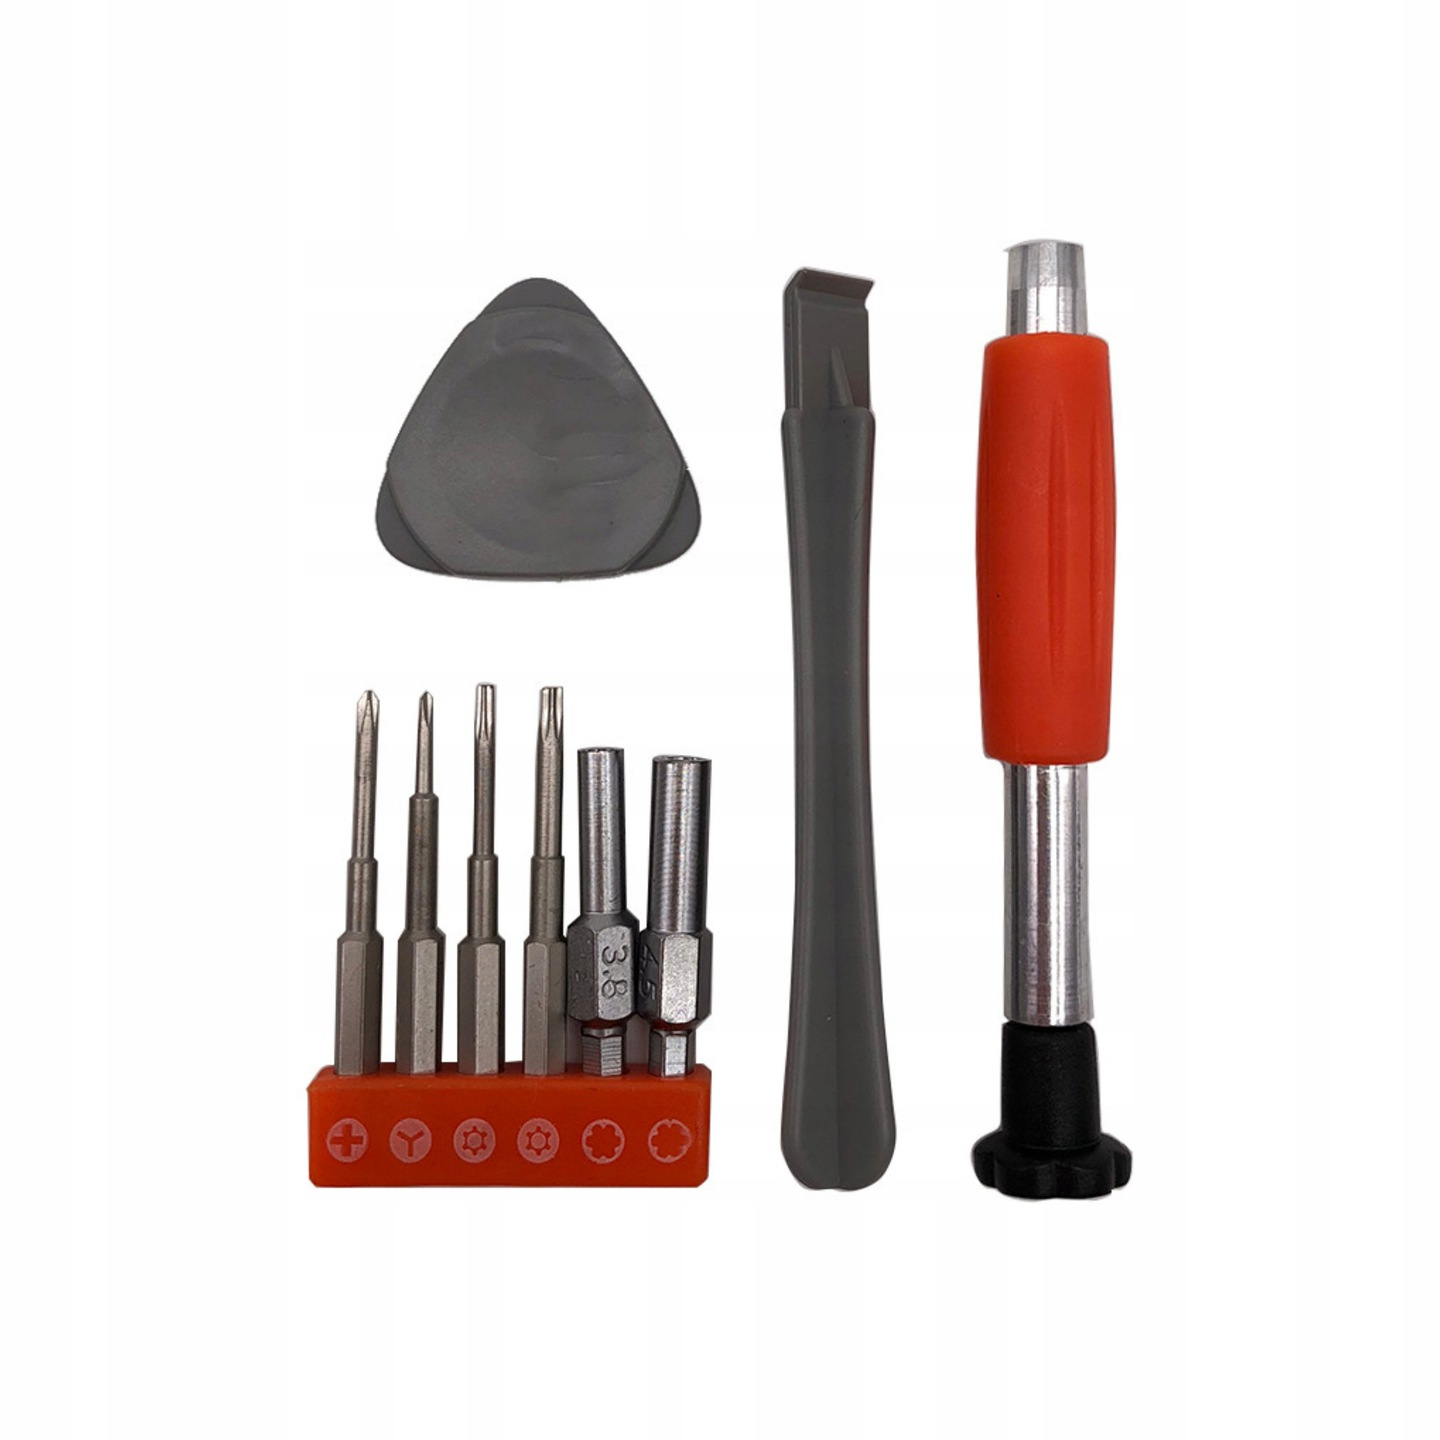 Item Screwdriver kit for Xbox One controller, Xbox One, S and X